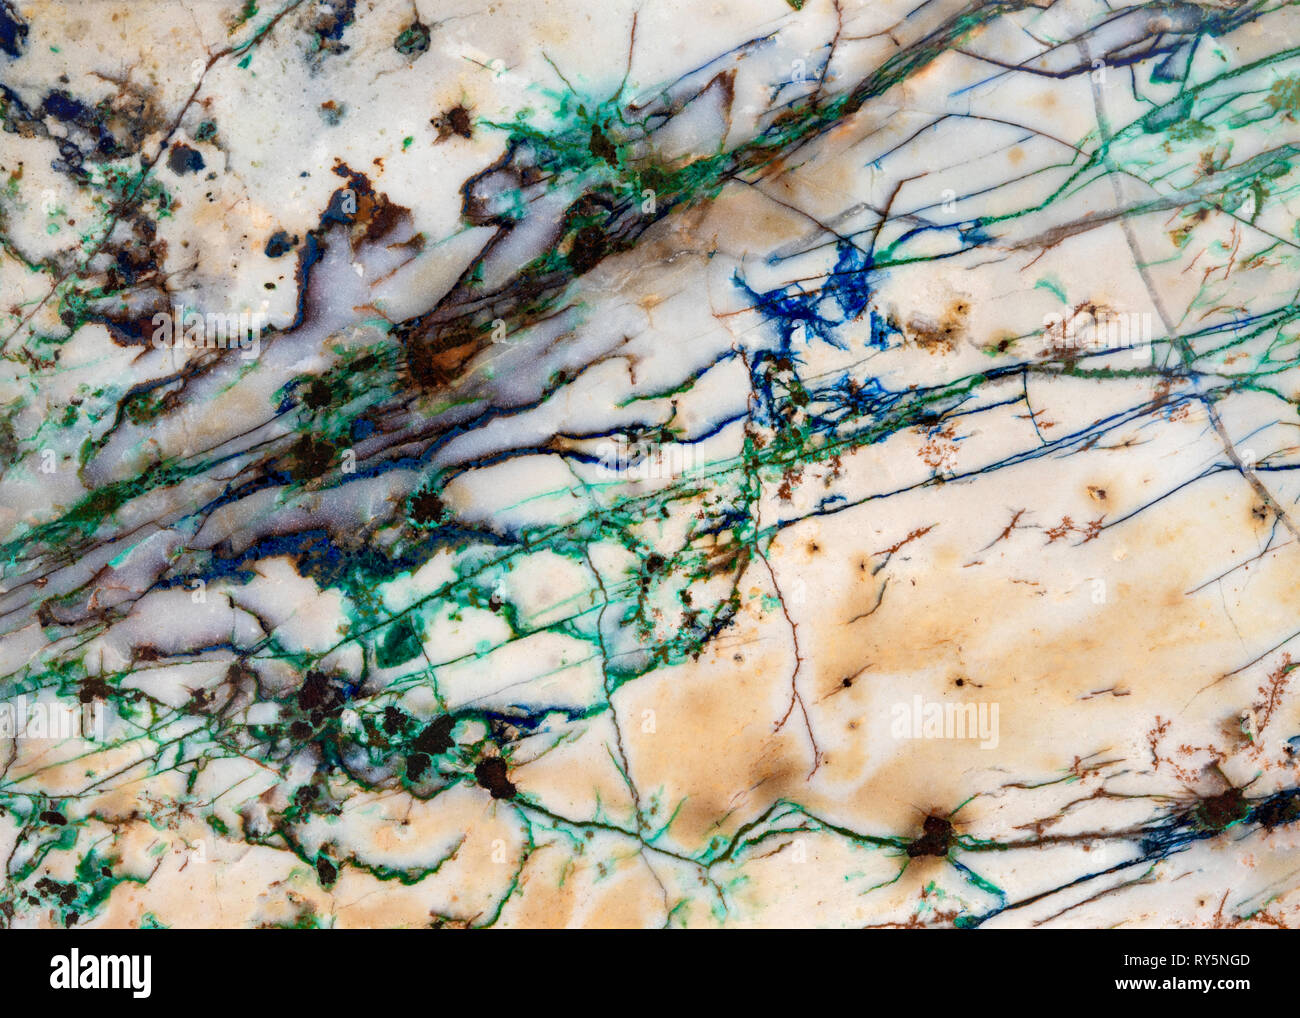 Detail of mineral veins running thru a slice of rock. The blue and green are Azurite and Malachite respectively. - Stock Image